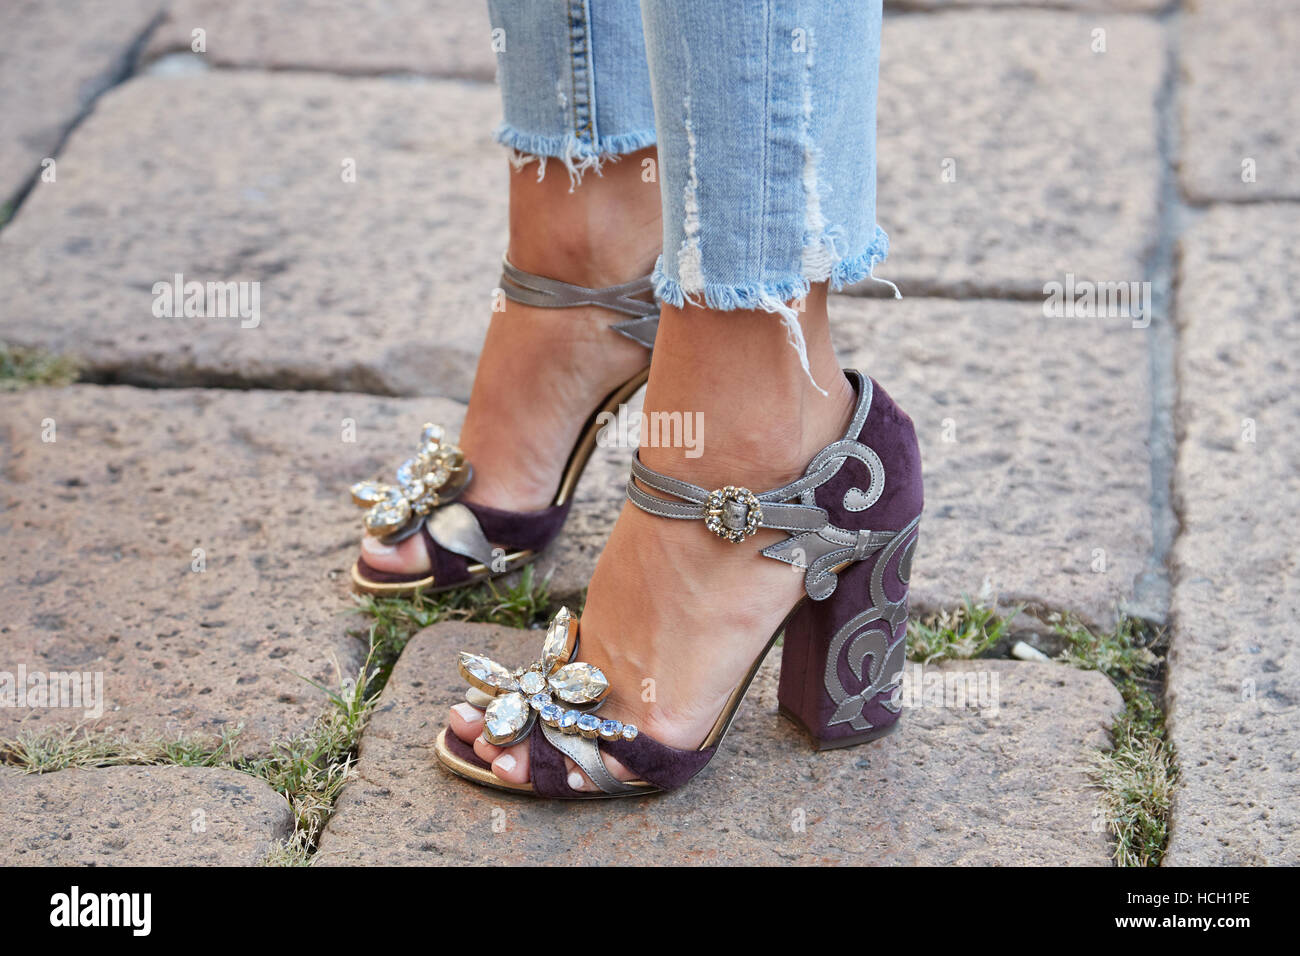 Woman with purple high heel shoes with gems decoration before Salvatore Ferragamo fashion show, Milan Fashion Week - Stock Image